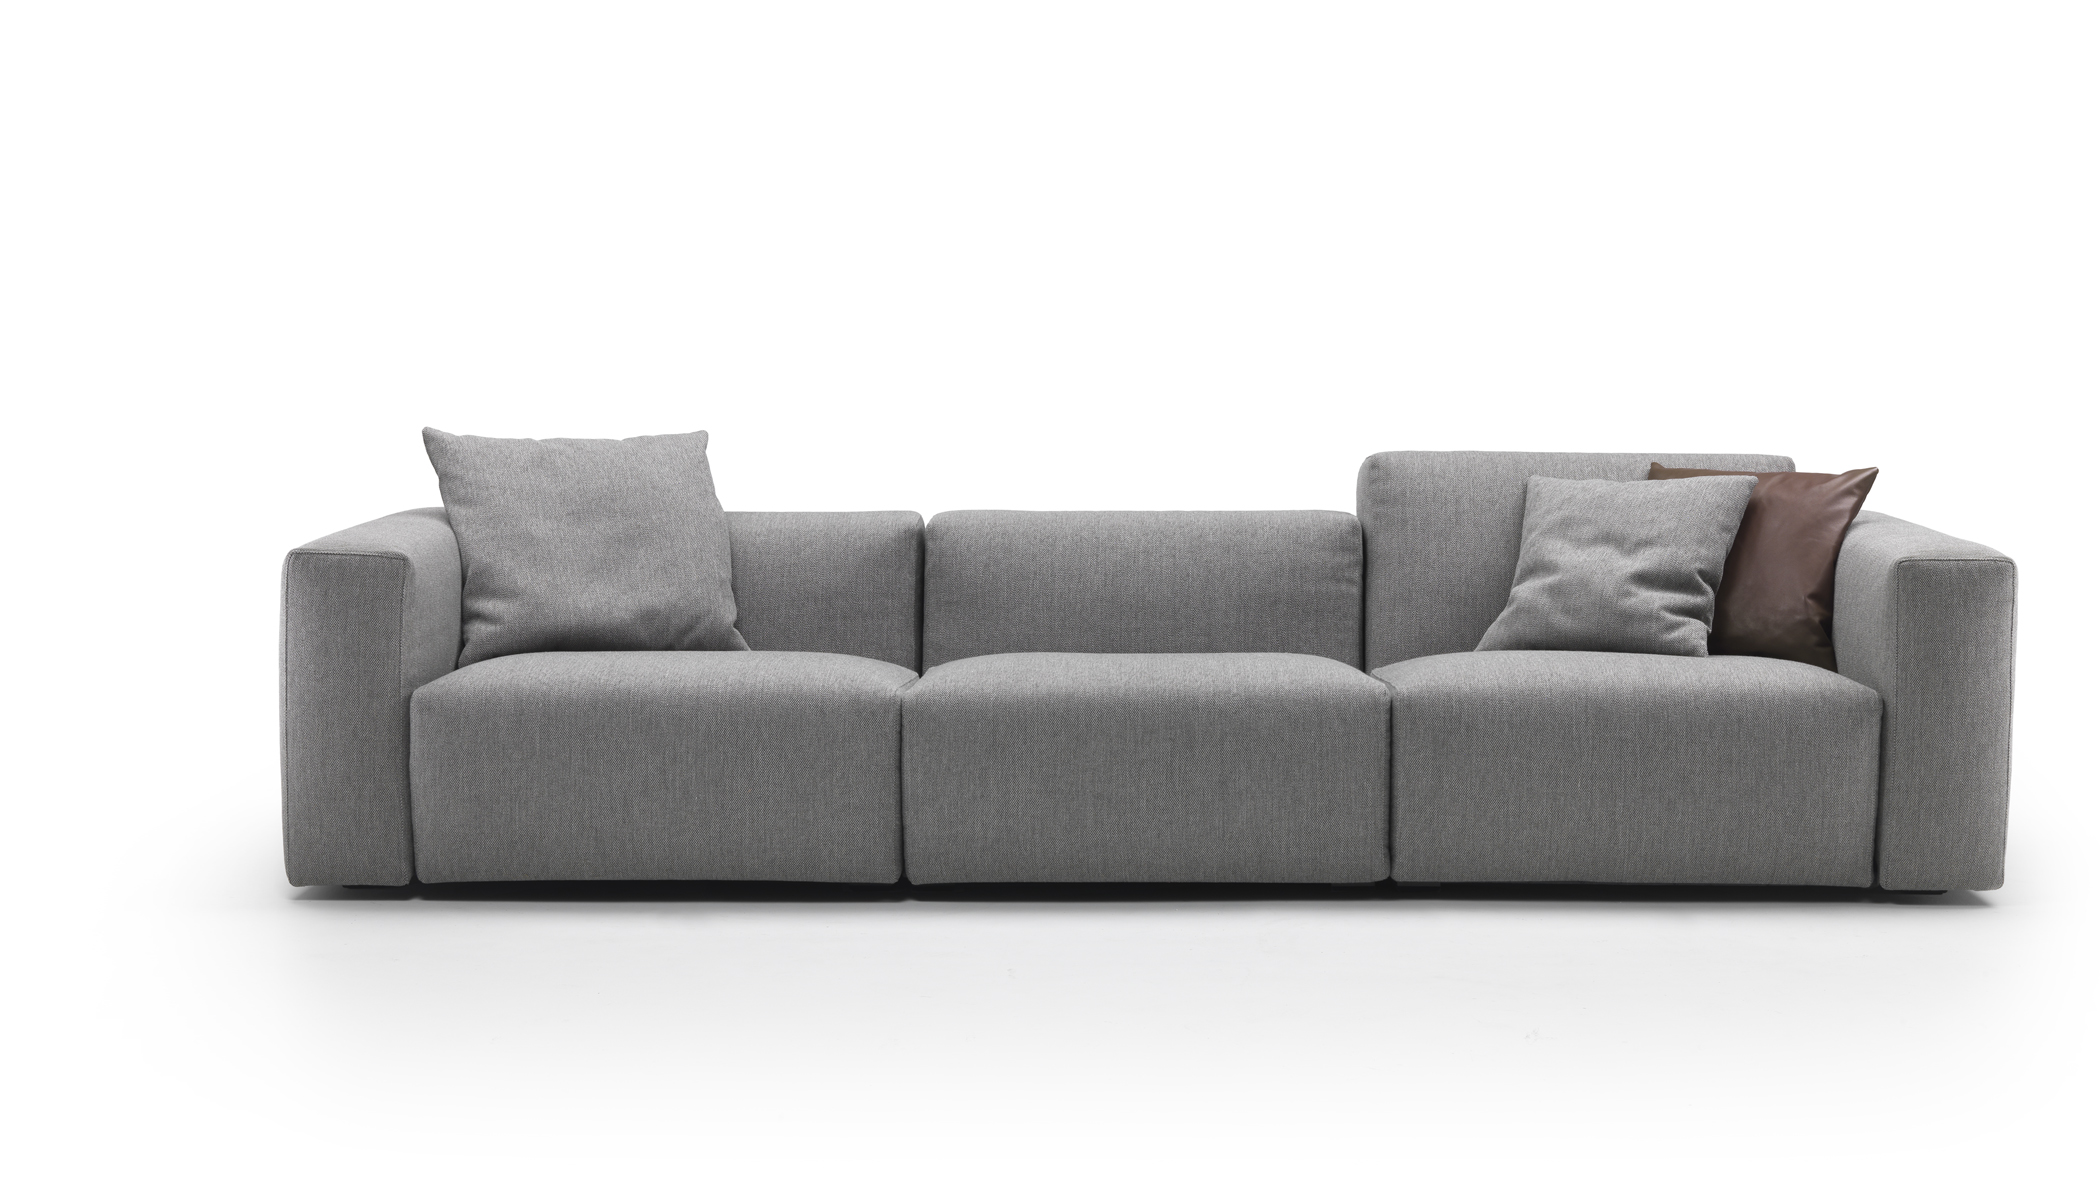 sc 1 st  Marelli Living : andrew sectional sofa - Sectionals, Sofas & Couches